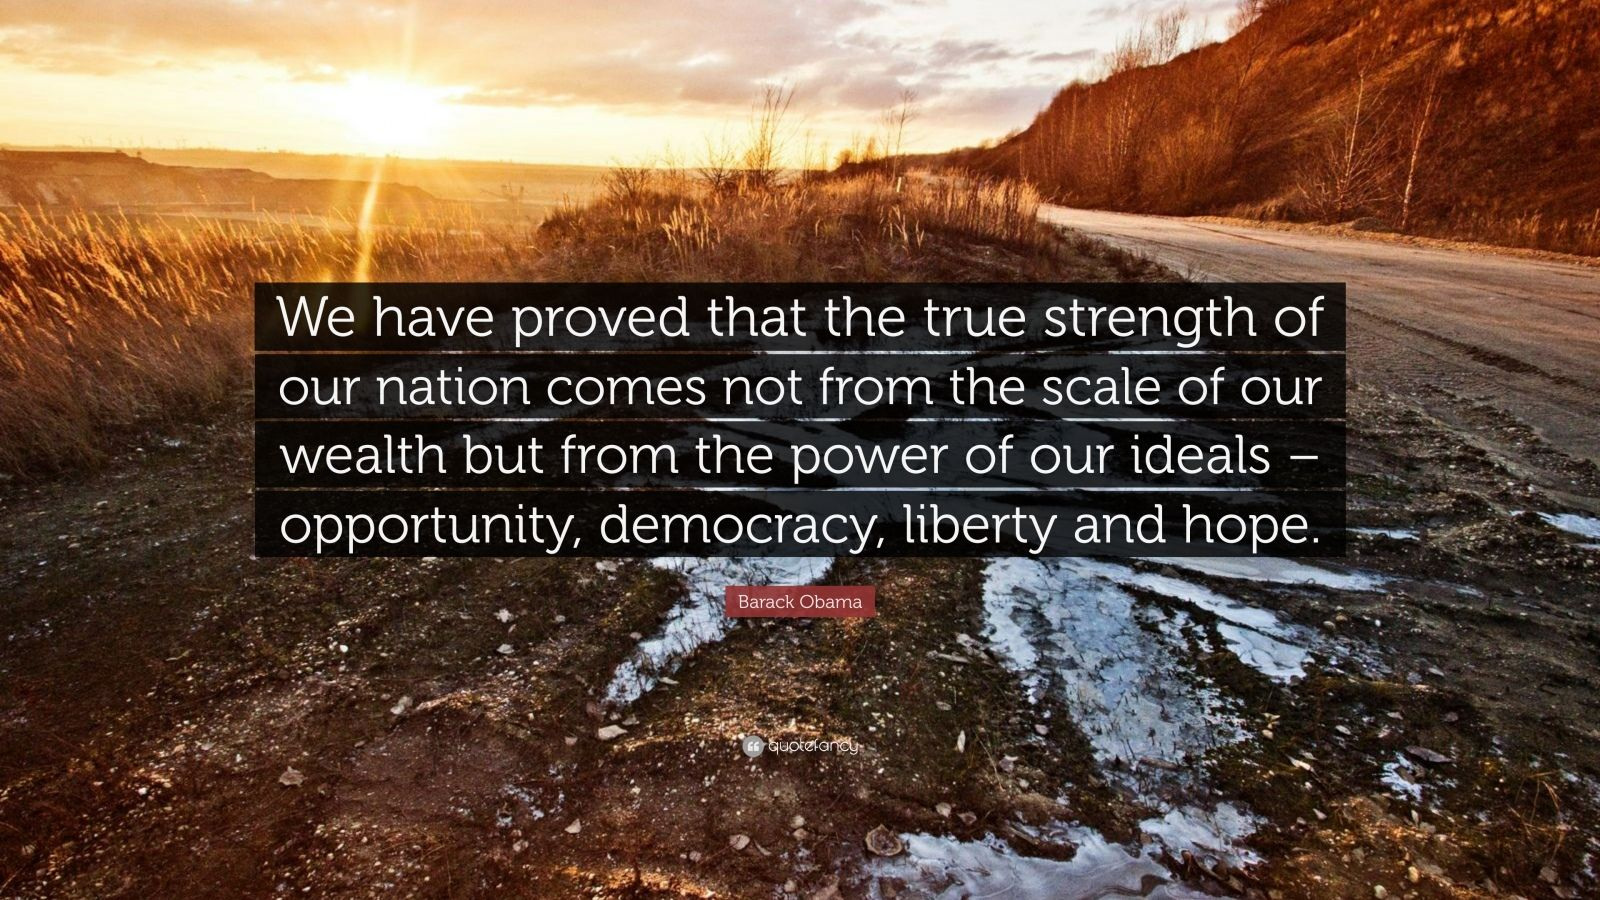 """Barack Obama Quote: """"We have proved that the true strength of our nation comes not from the scale of our wealth but from the power of our ideals – opportunity, democracy, liberty and hope."""""""